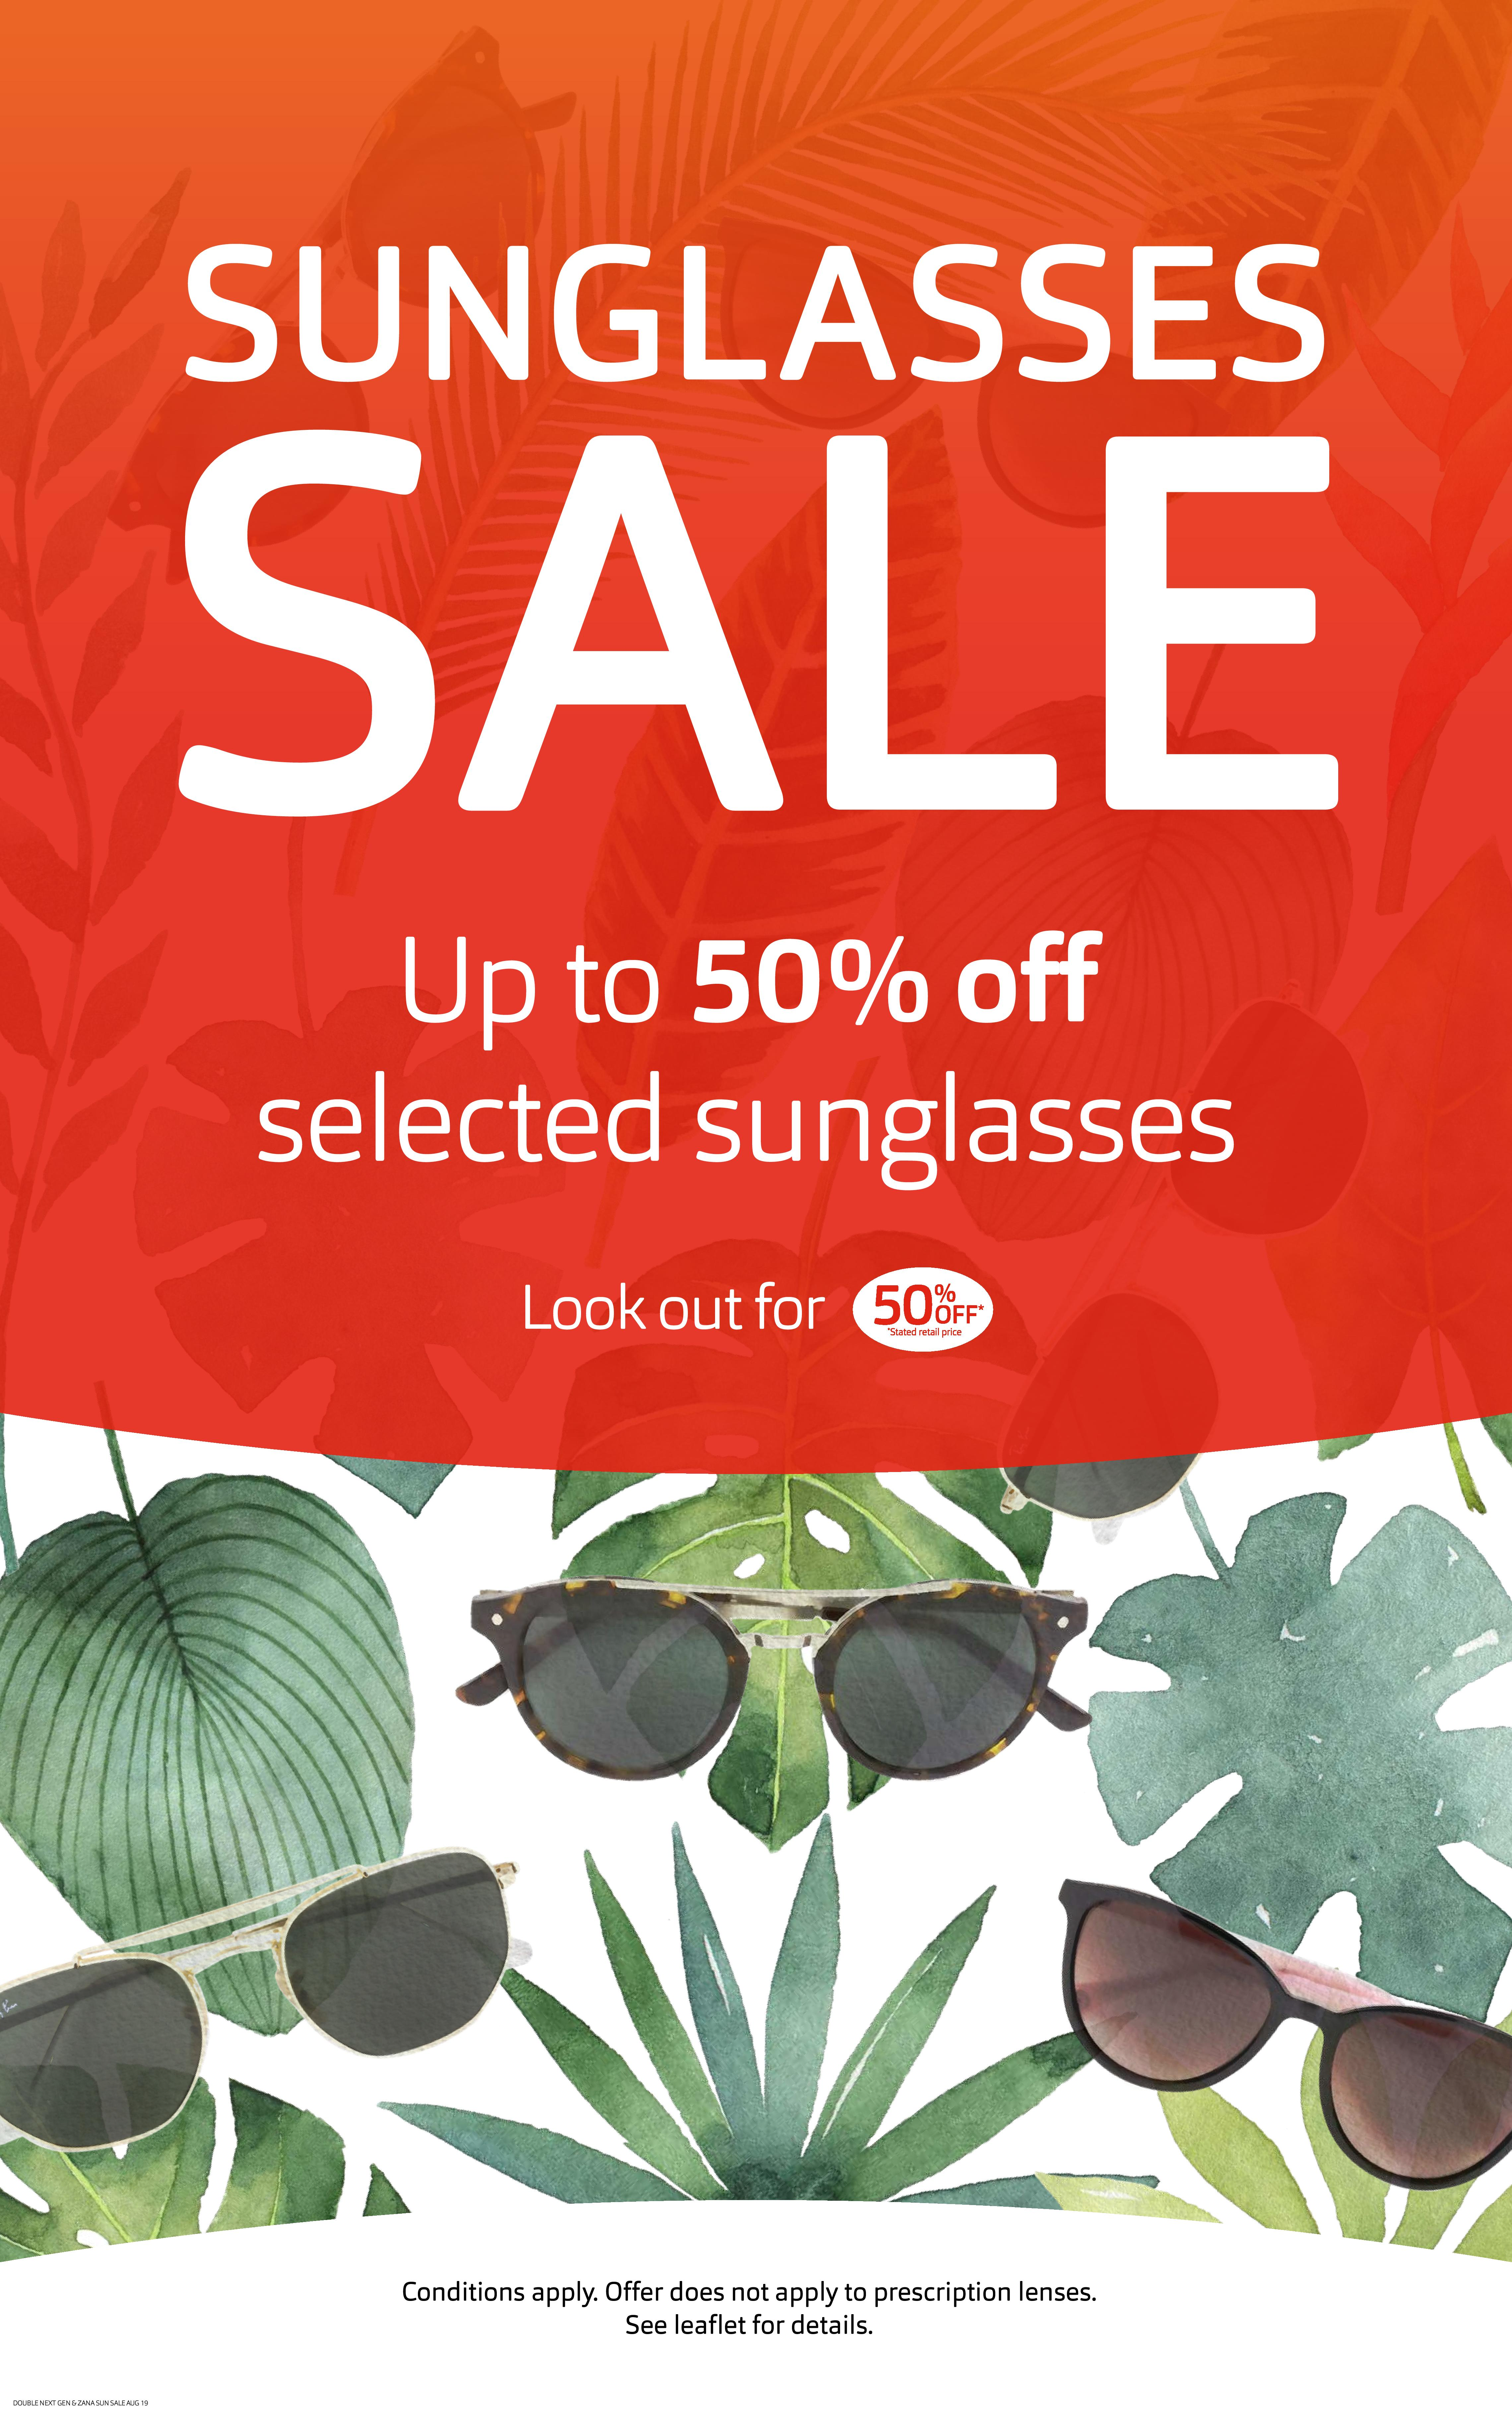 Up to 50% off sunglasses at Vision Express